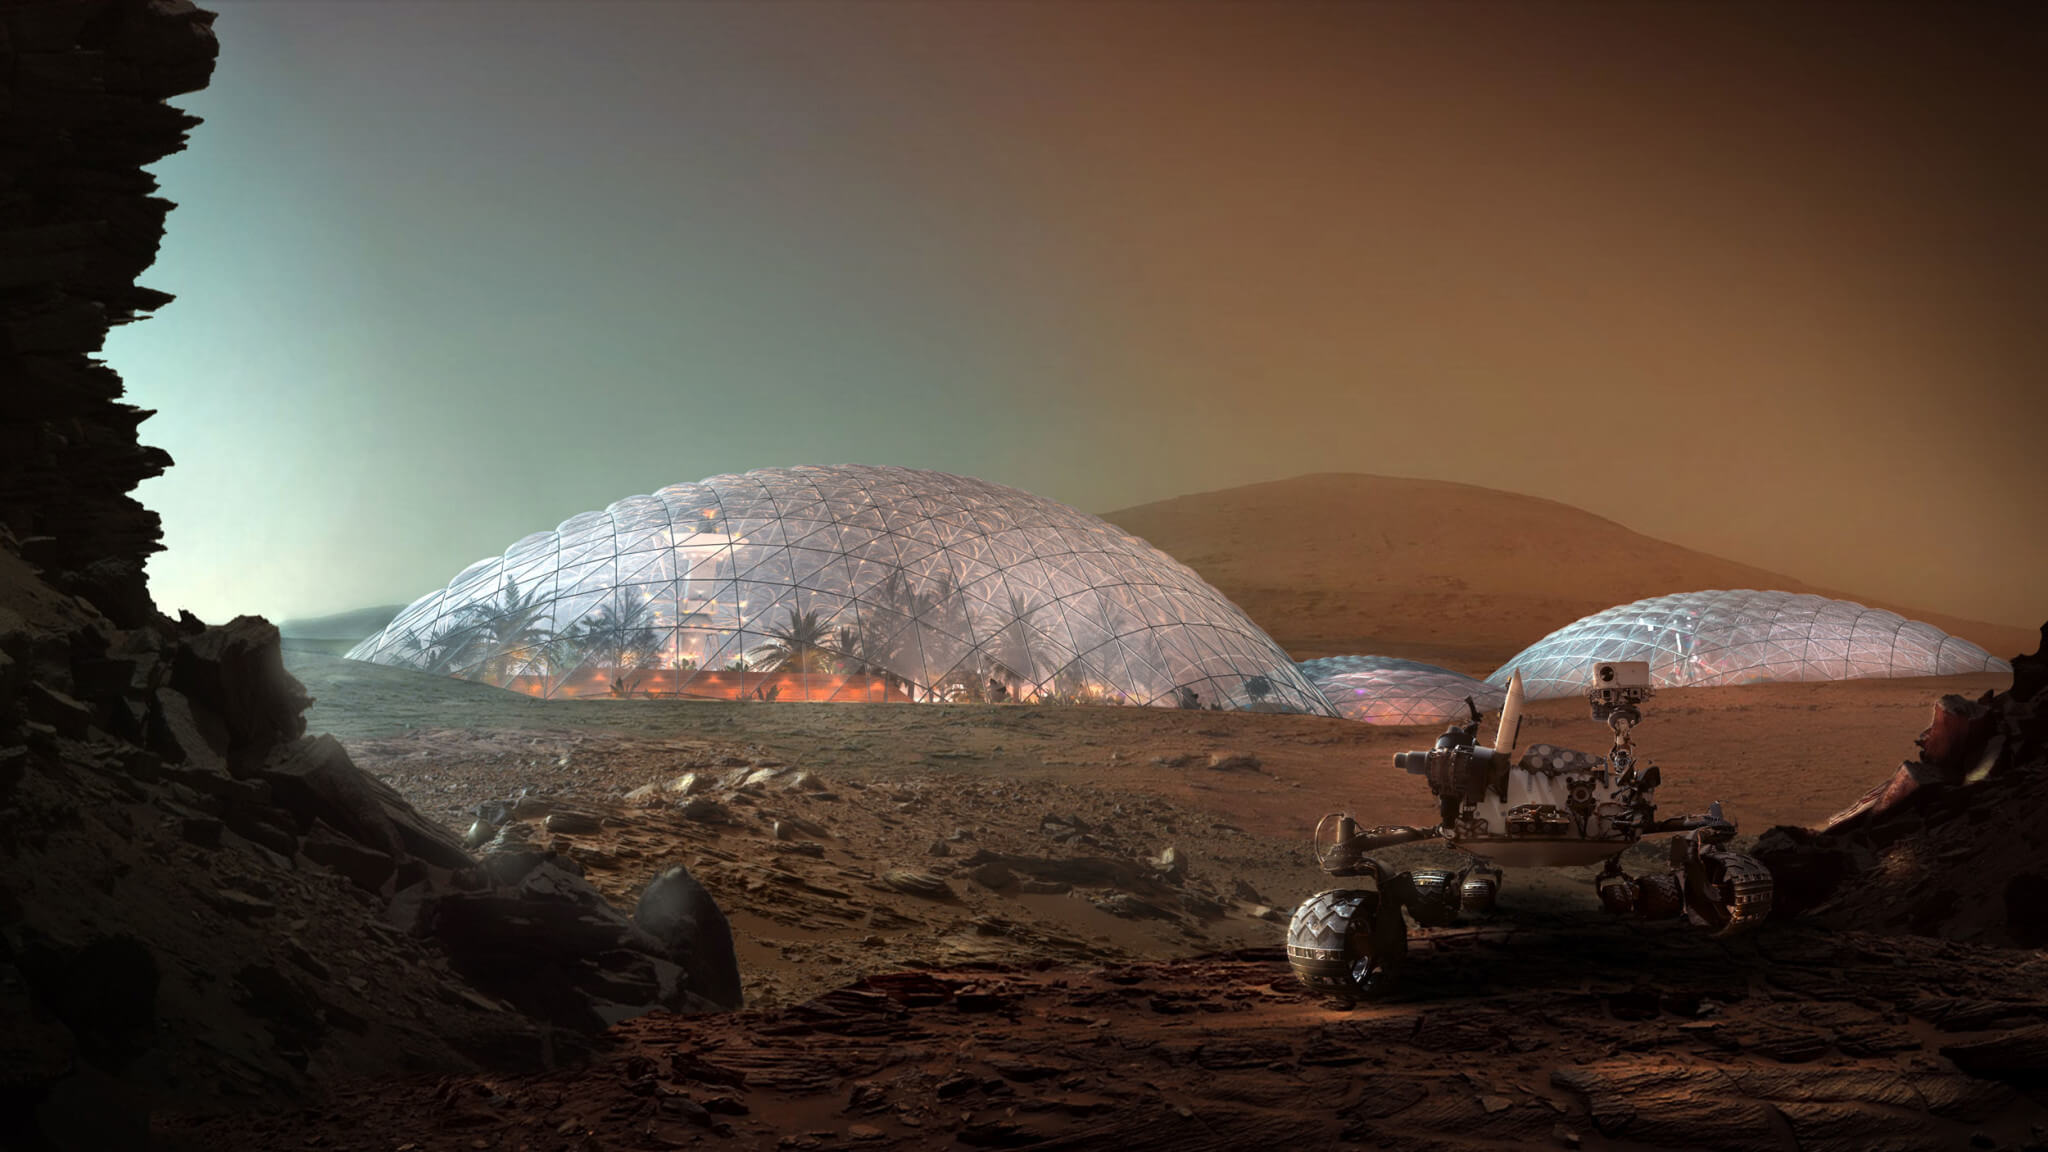 For communications with Earth, Martian colonists will use the laser